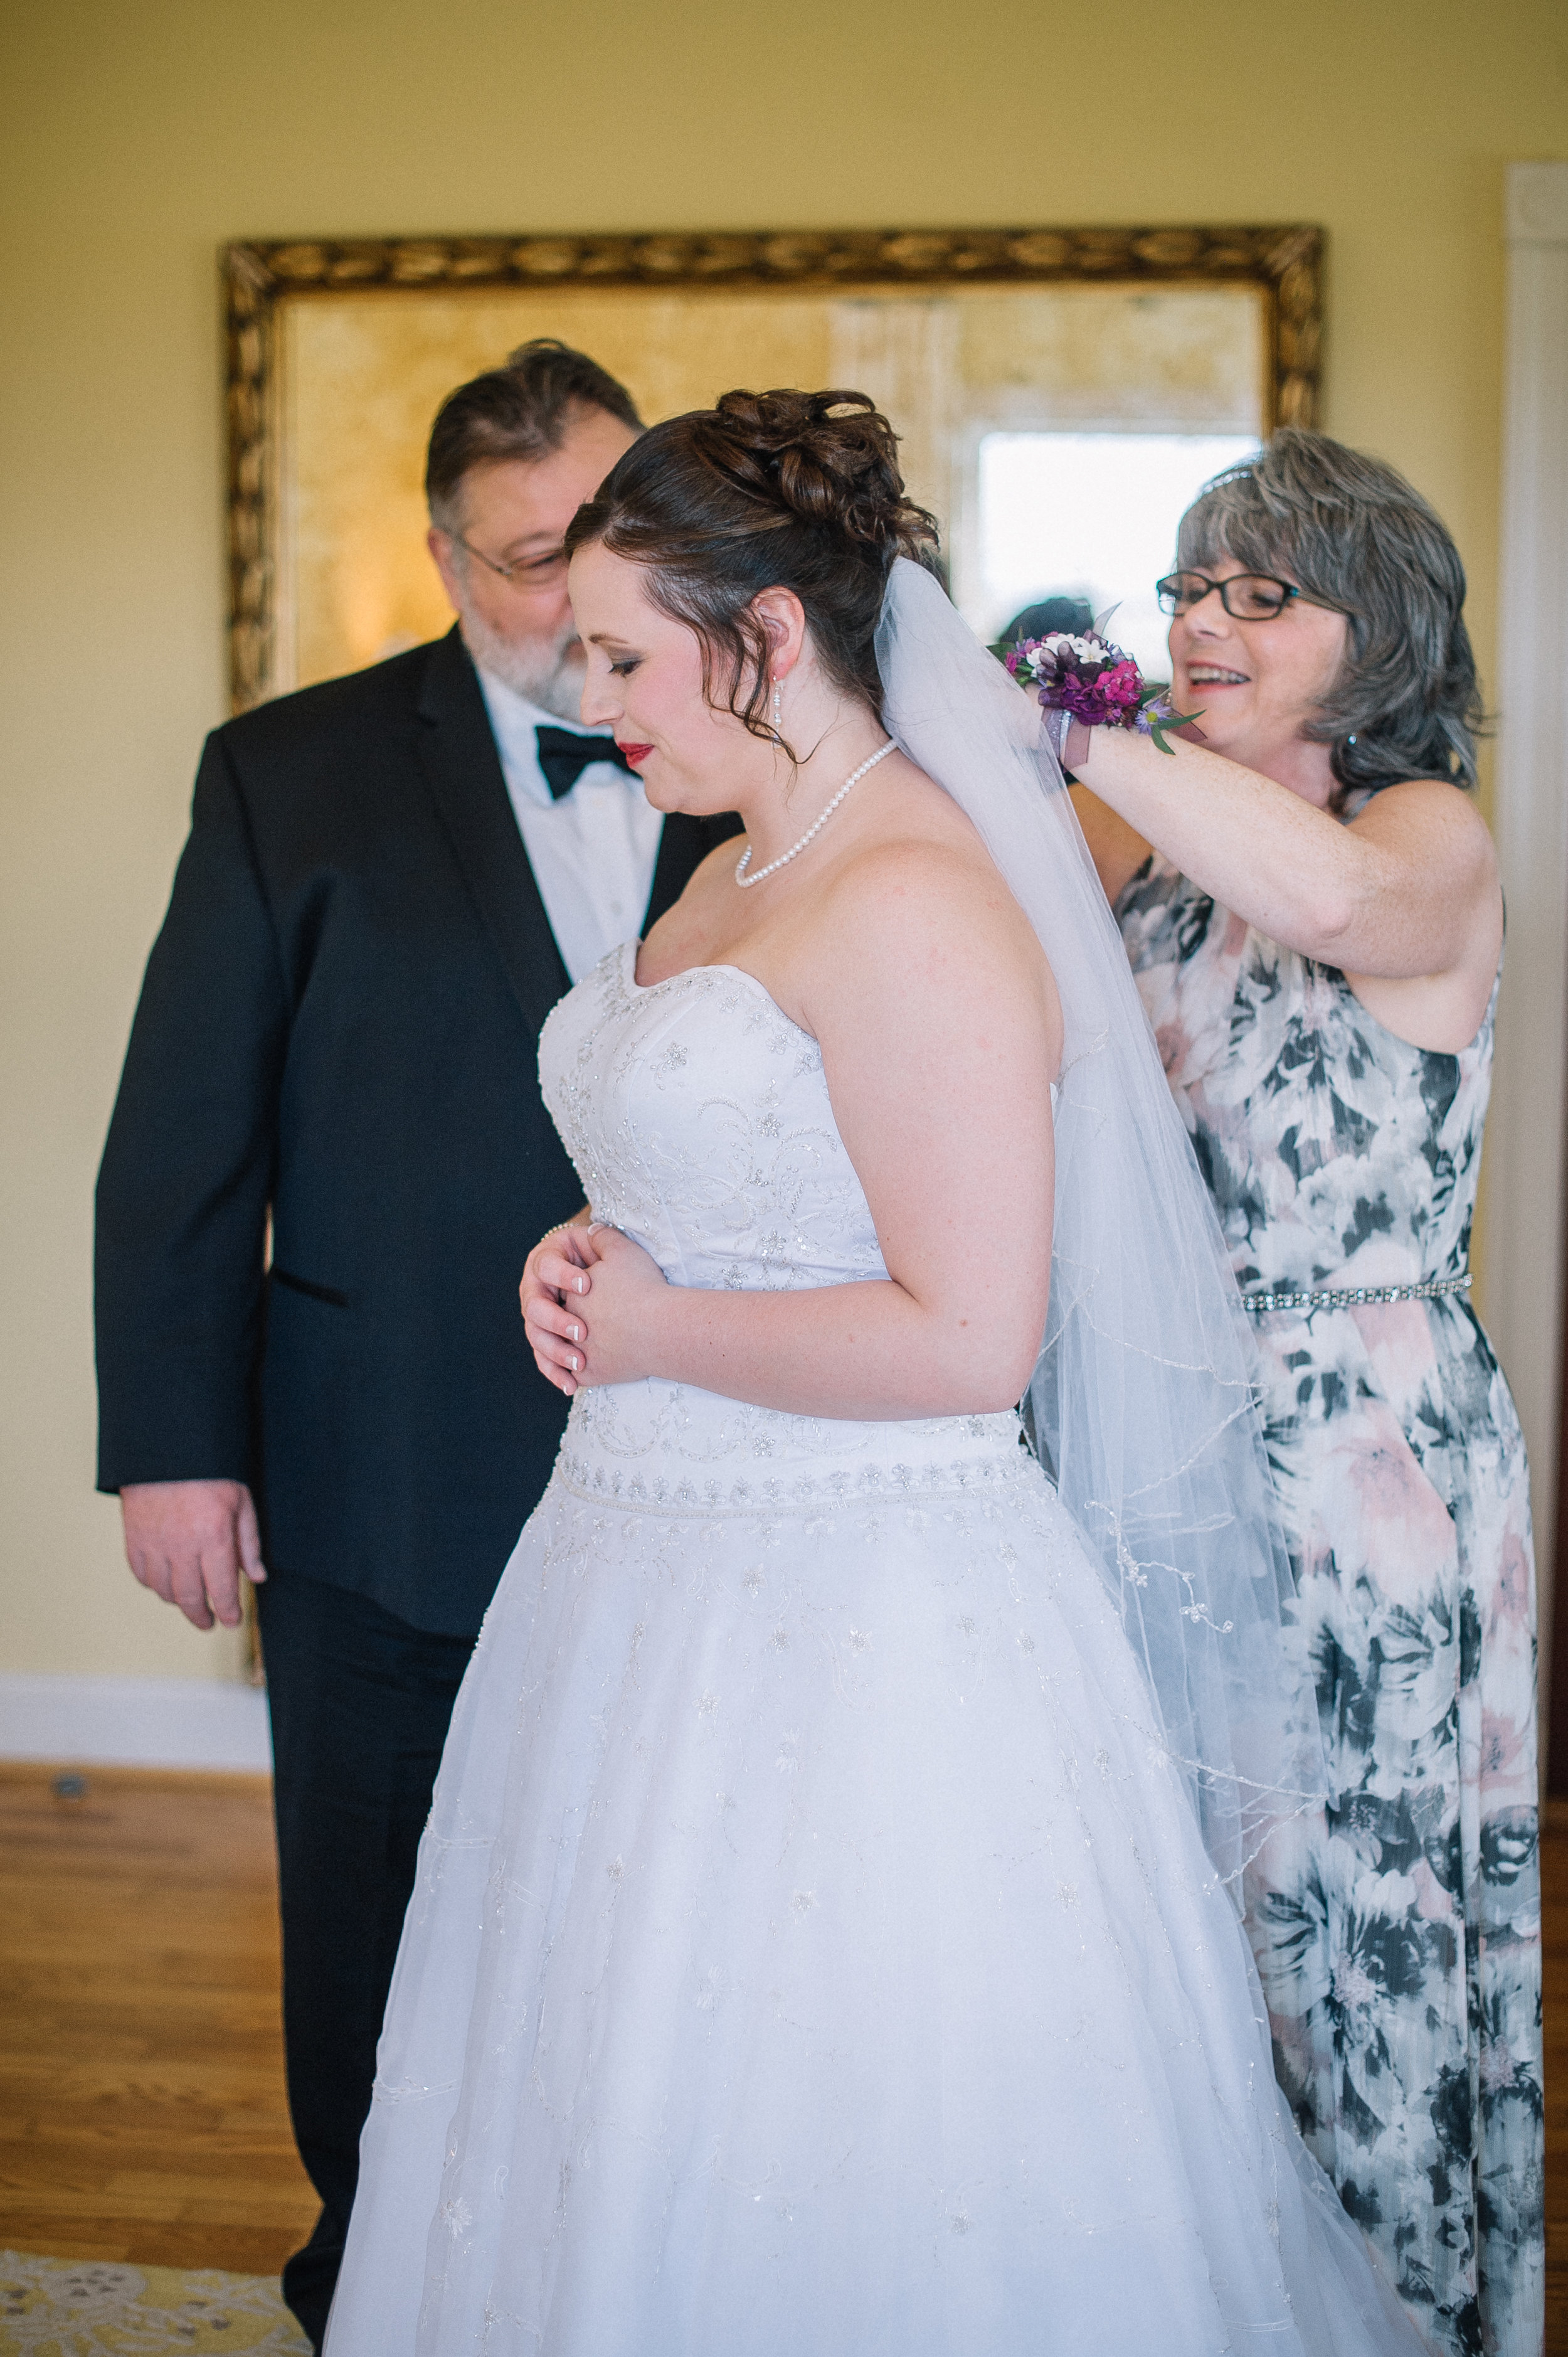 Earlymountainweddingphotographer-87.jpg